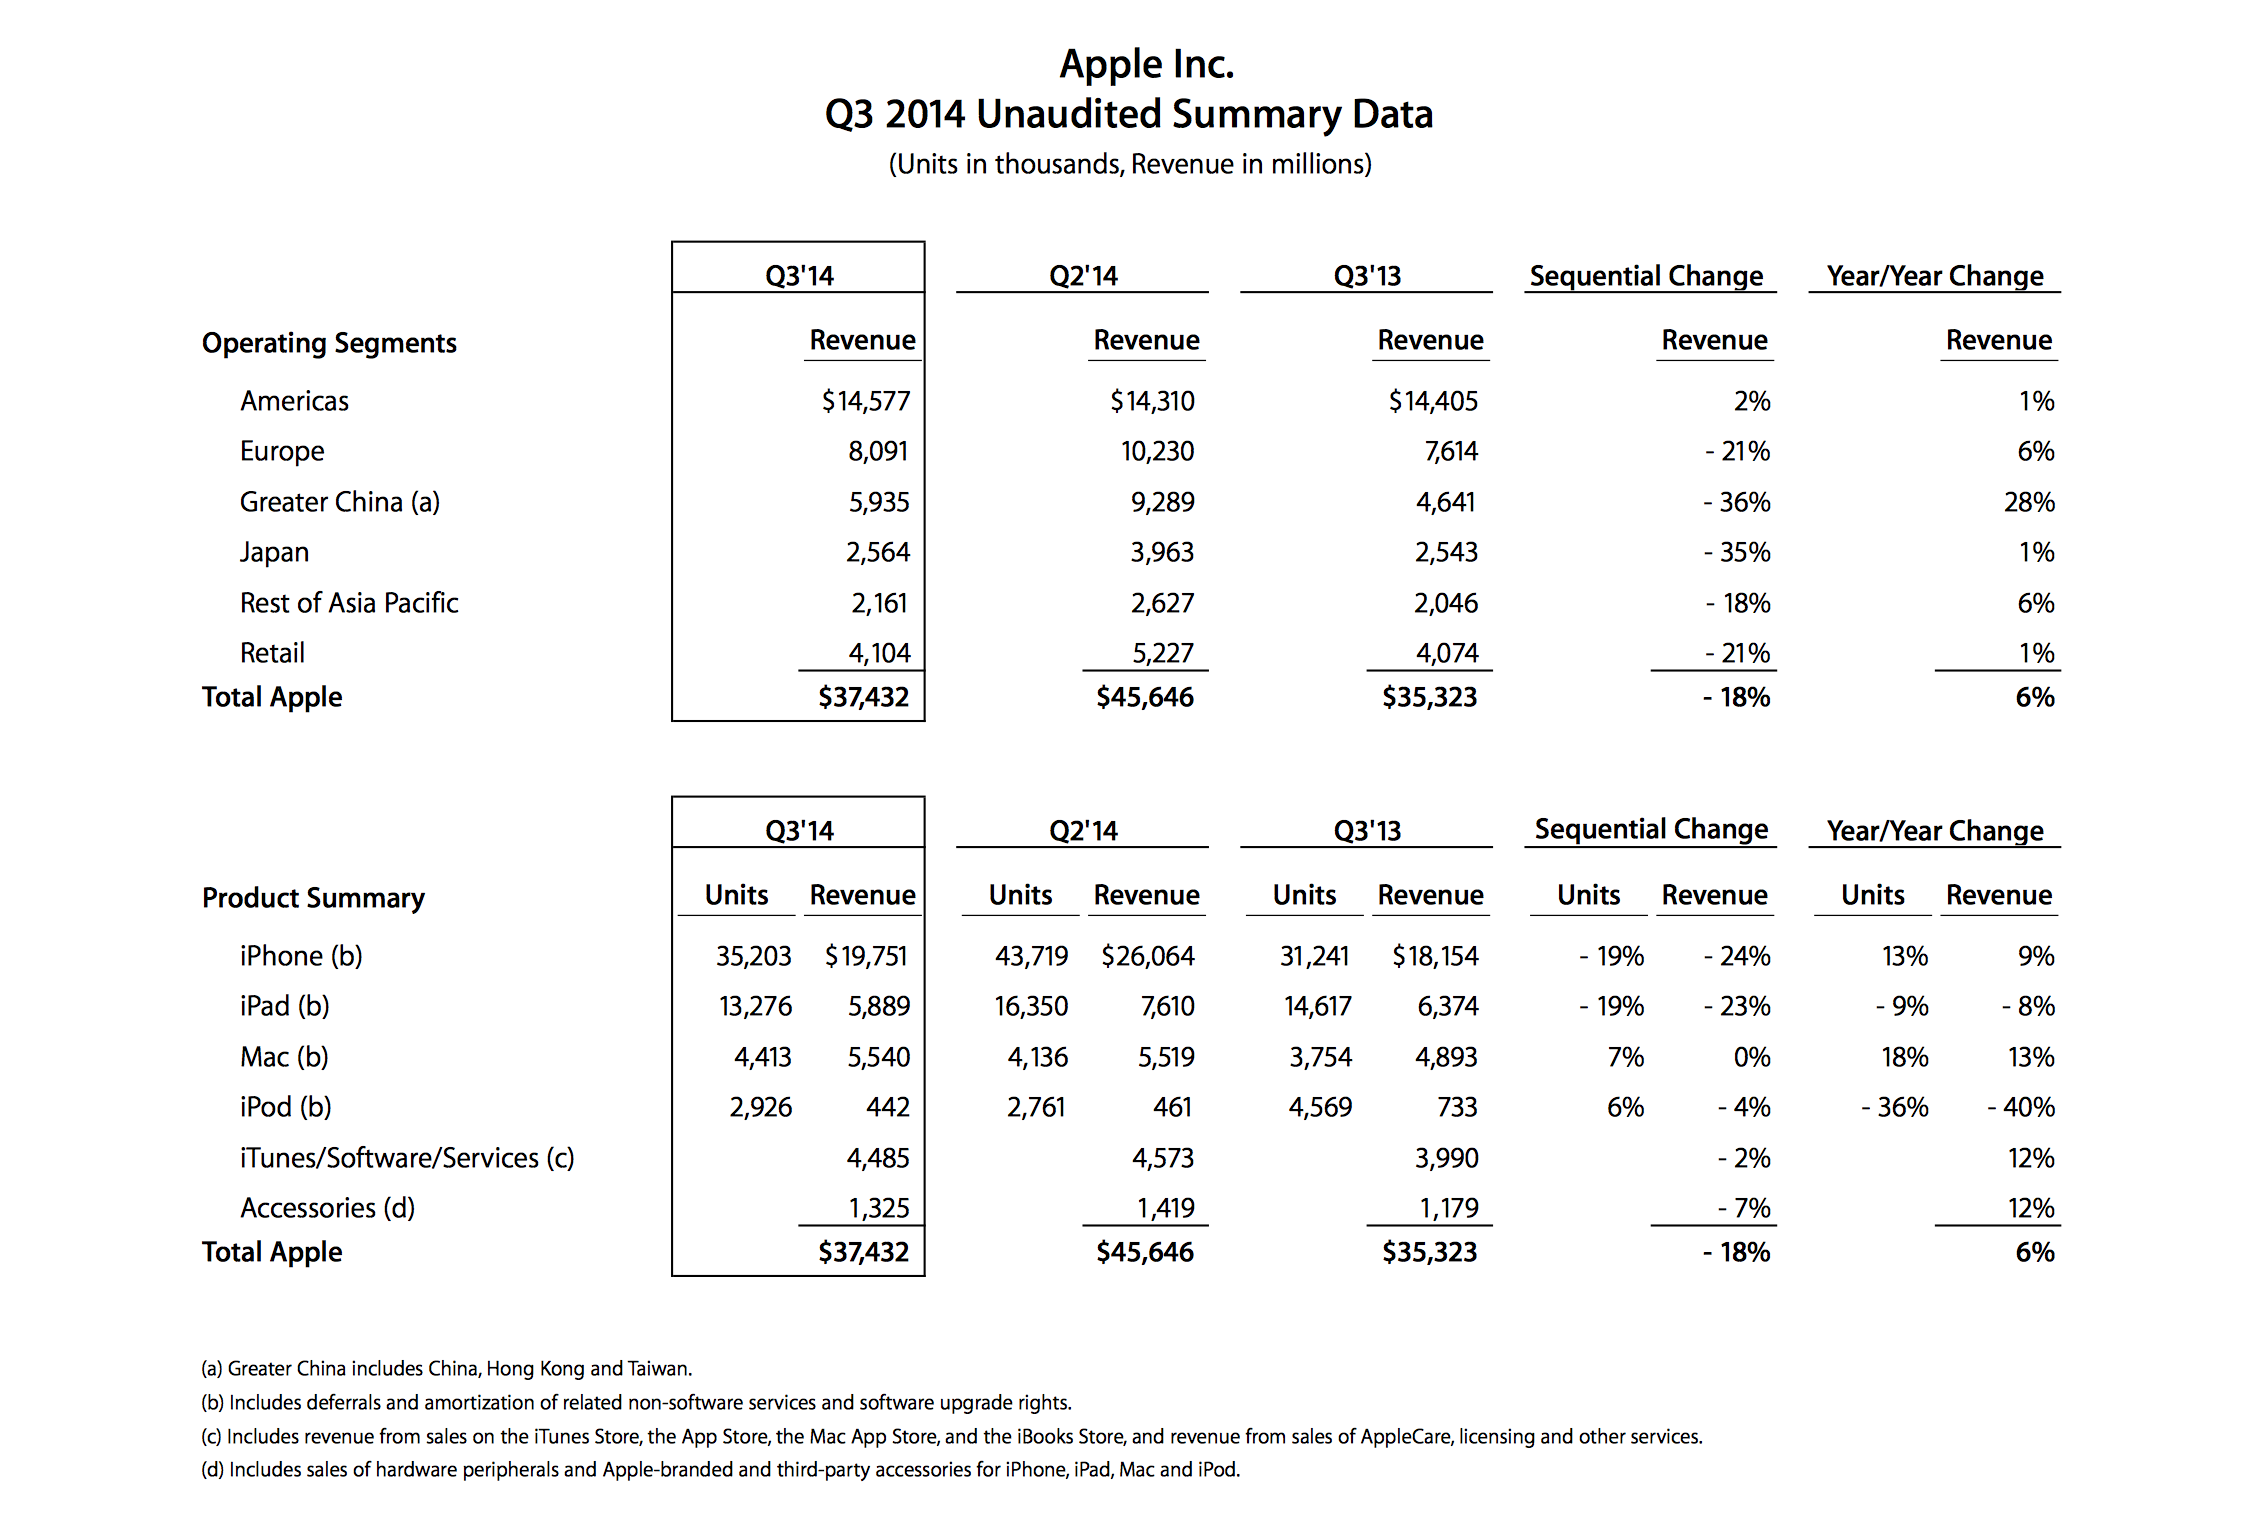 data_applenews_q3fy14datasum